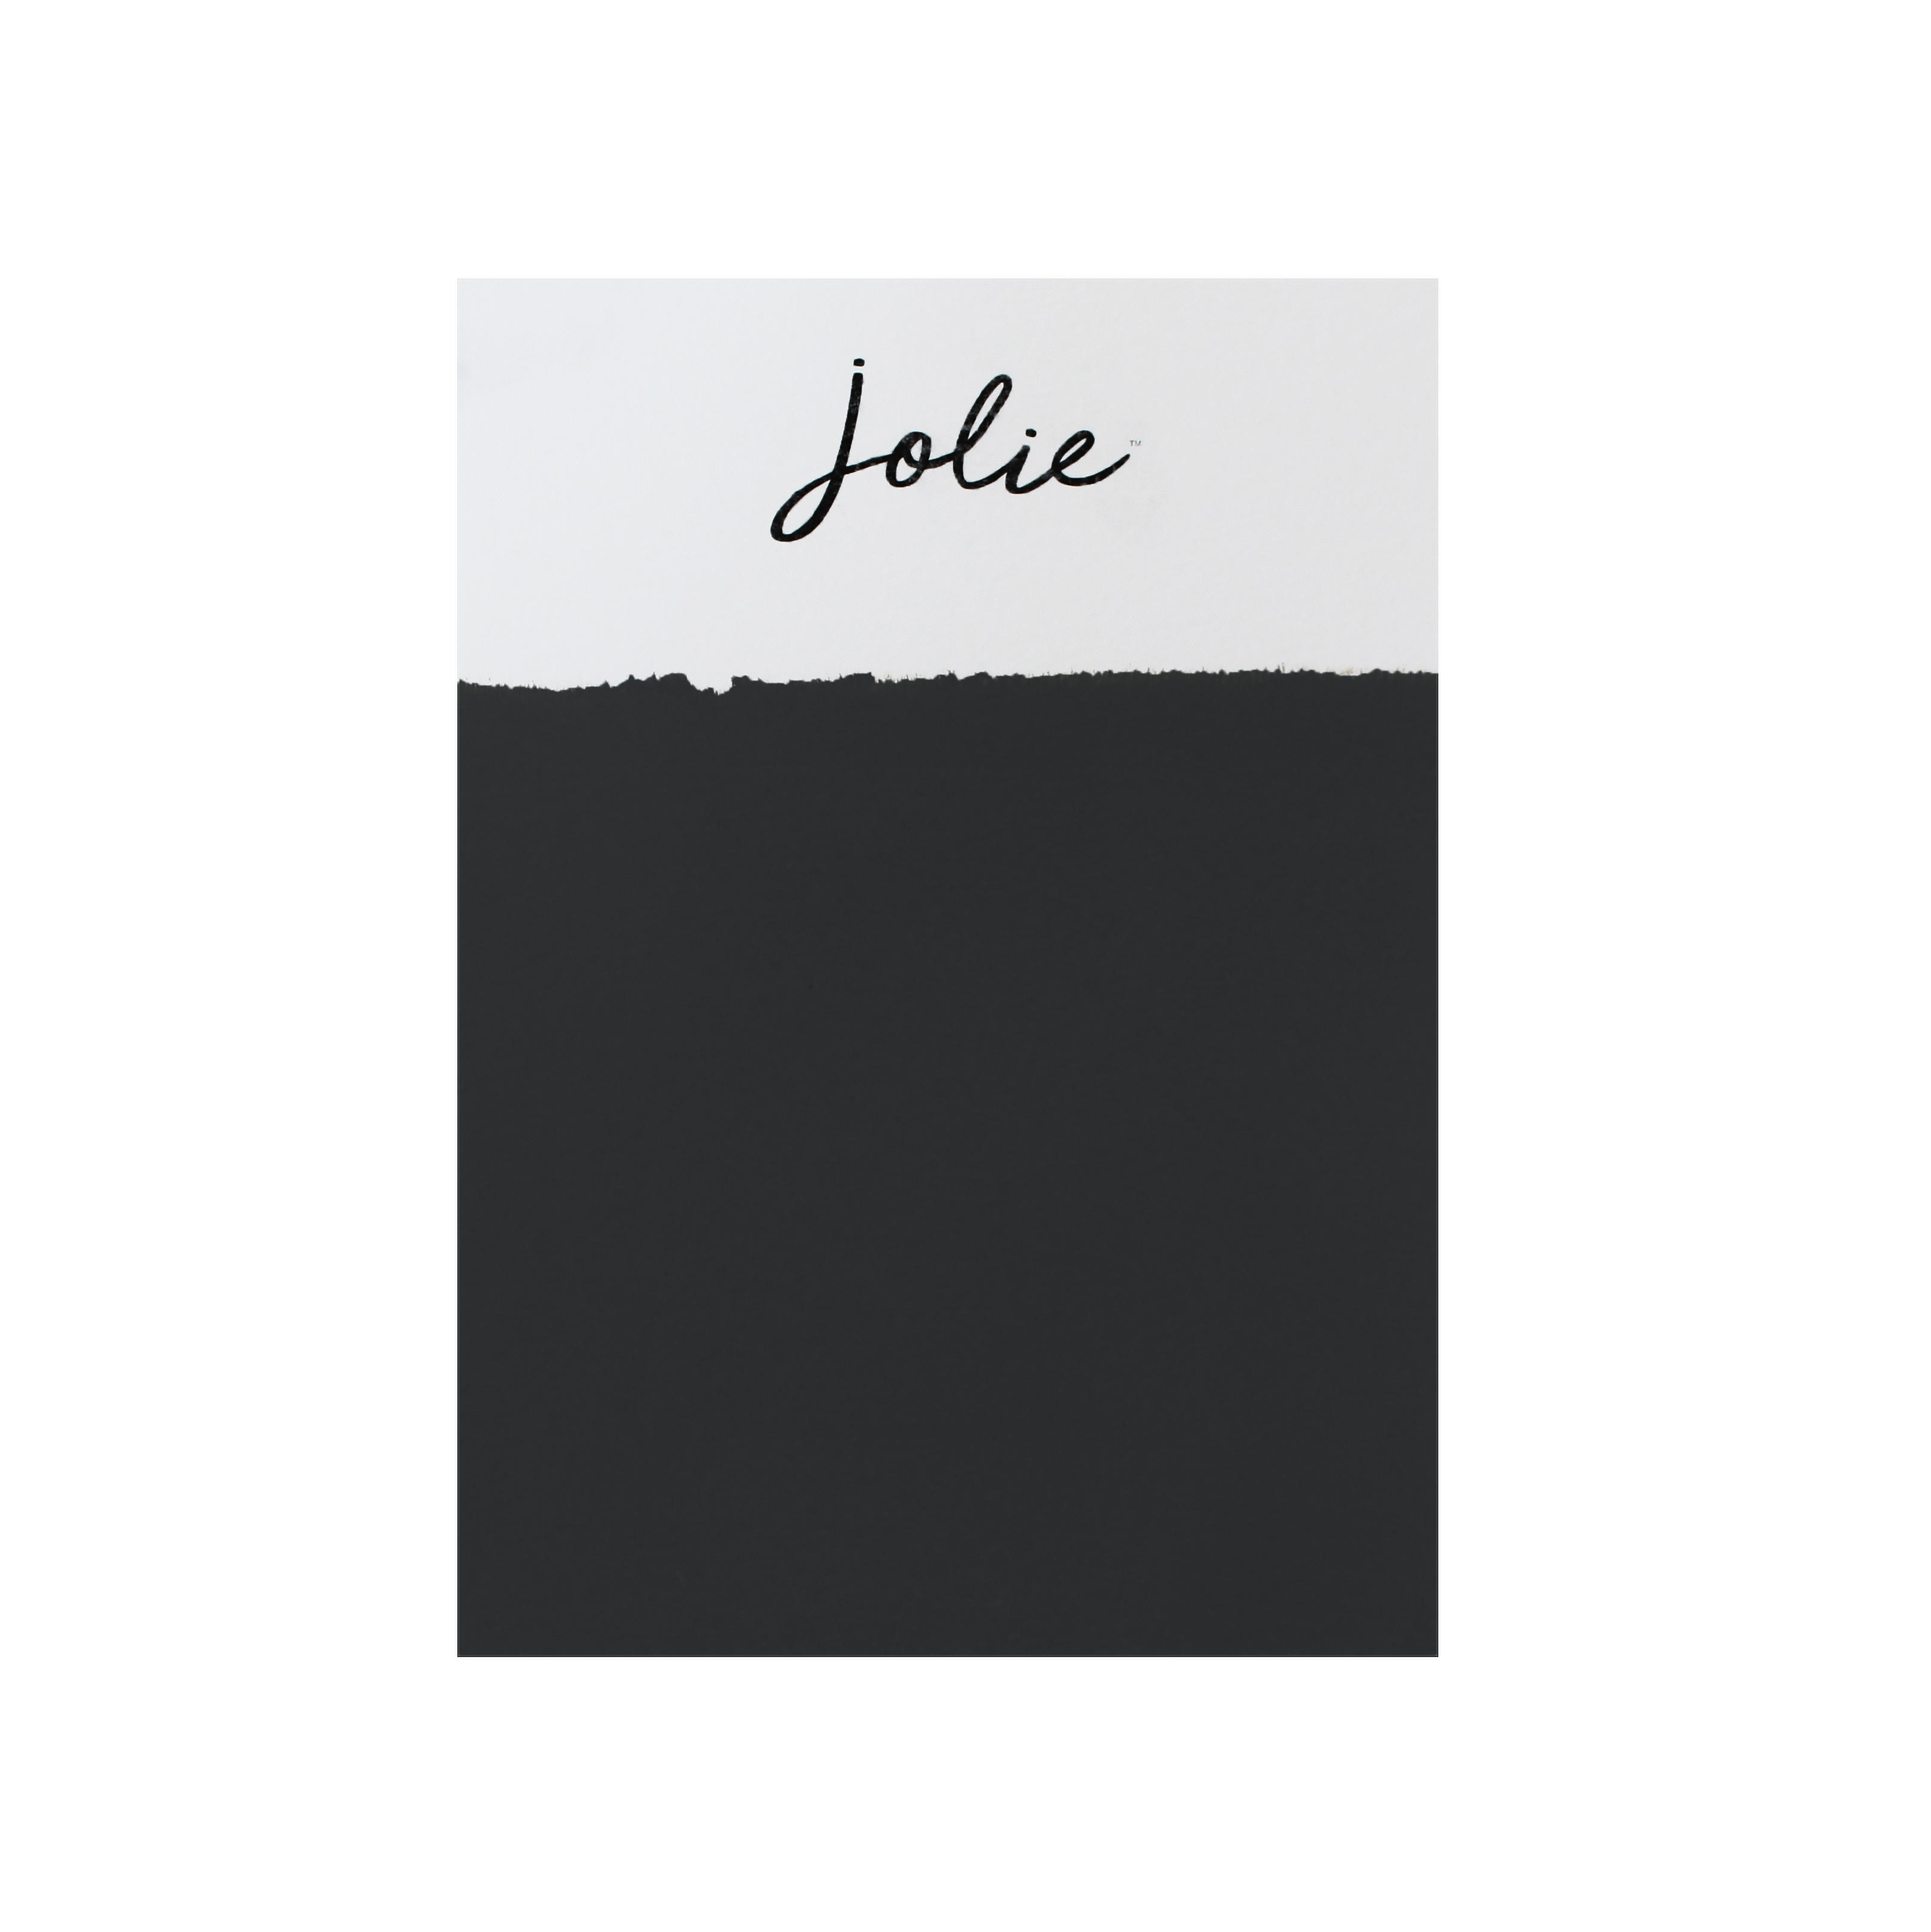 Graphite - Jolie Paint